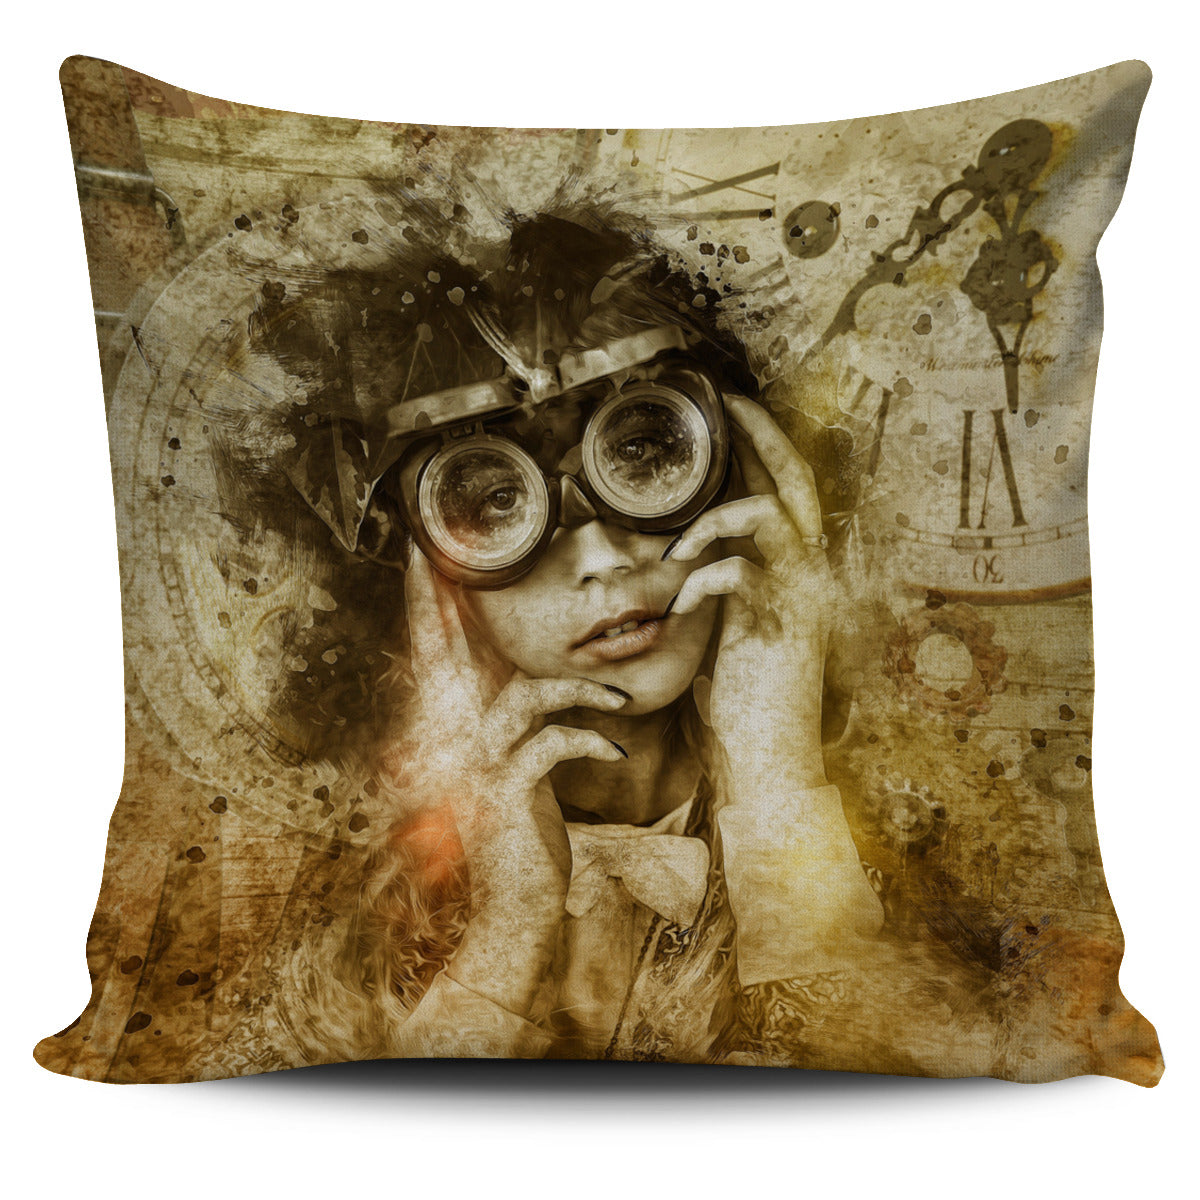 Steampunk Viewer Pillow Cover - Hello Moa